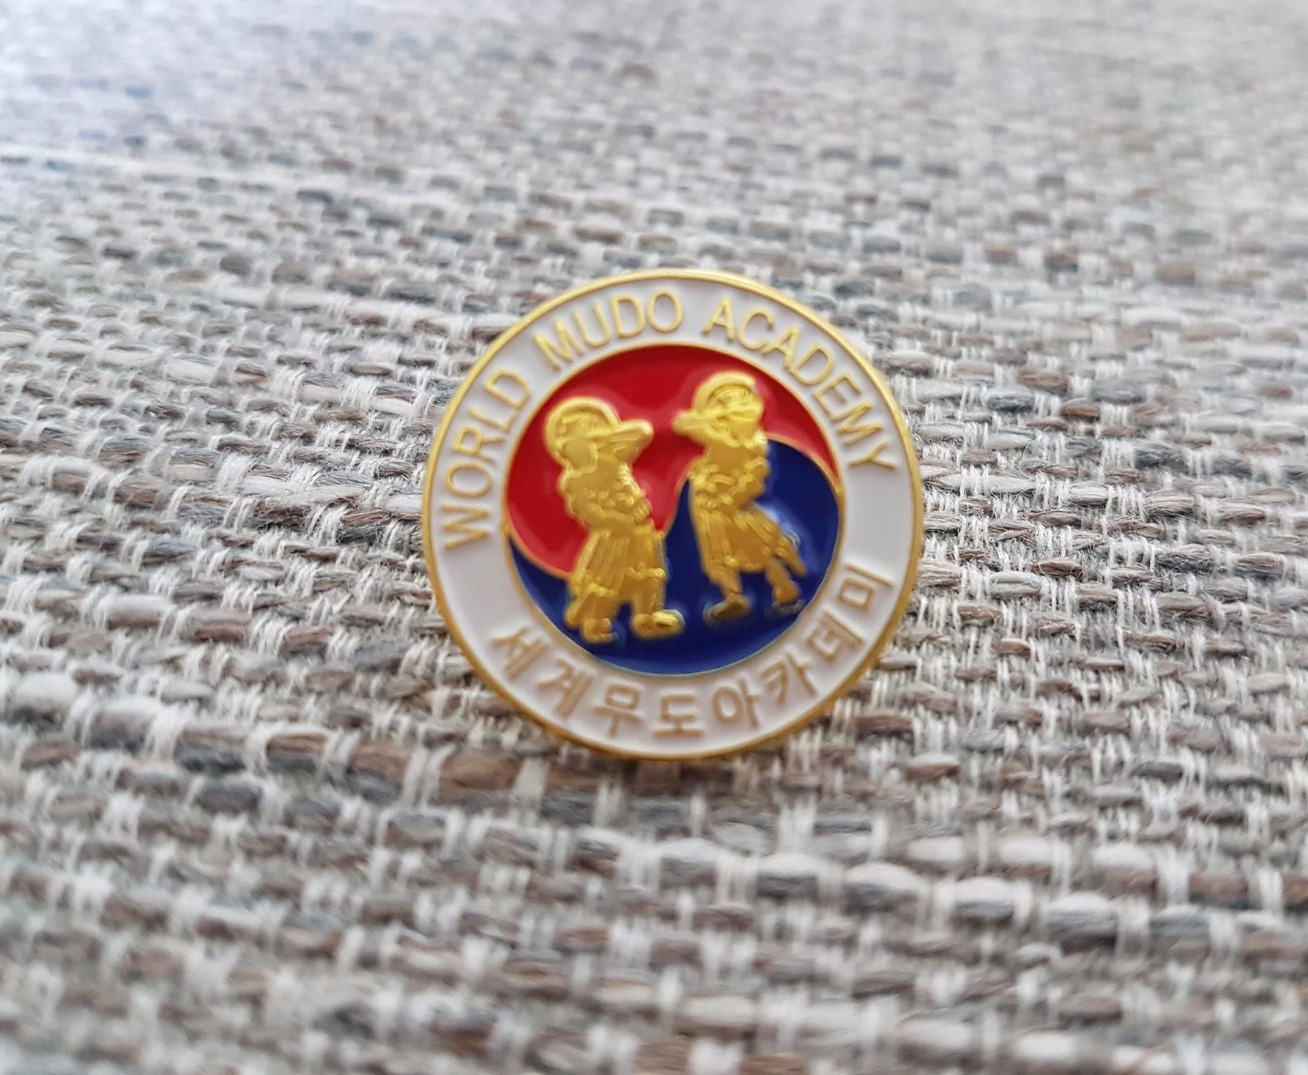 Mudo Academy Metal Pin Badge